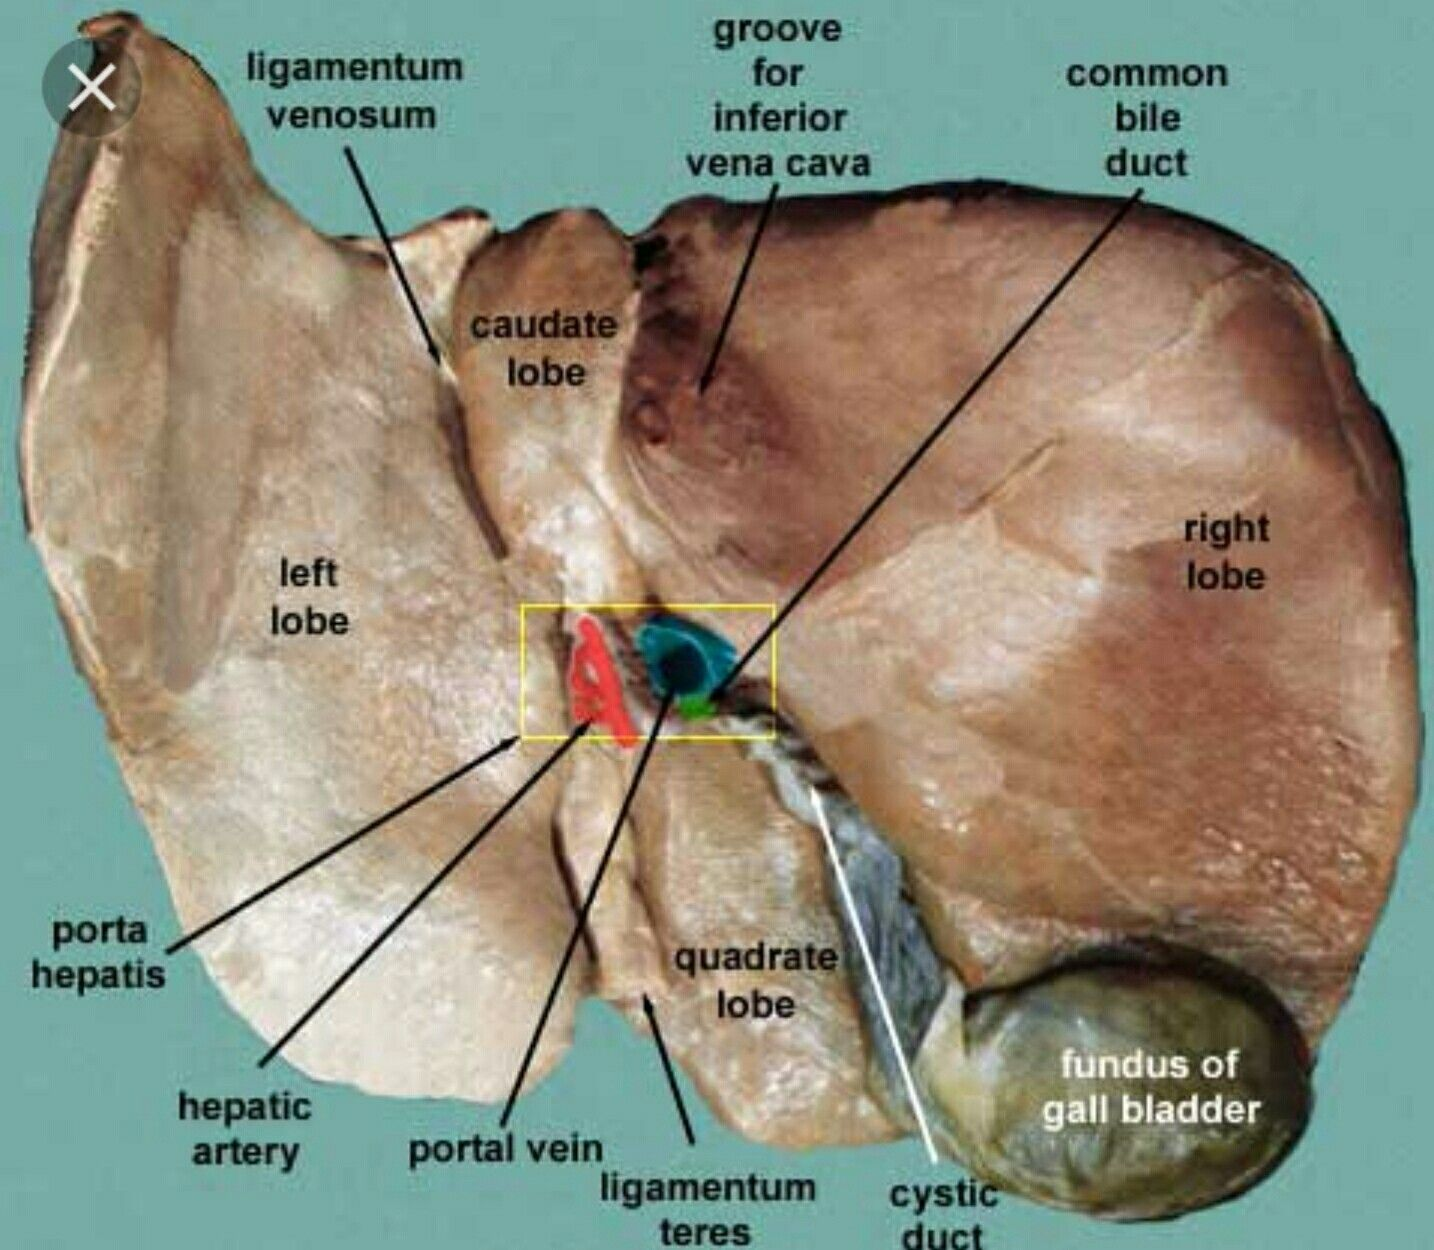 Colorful Cadaver Images Anatomy Ensign Physiology Of Human Body